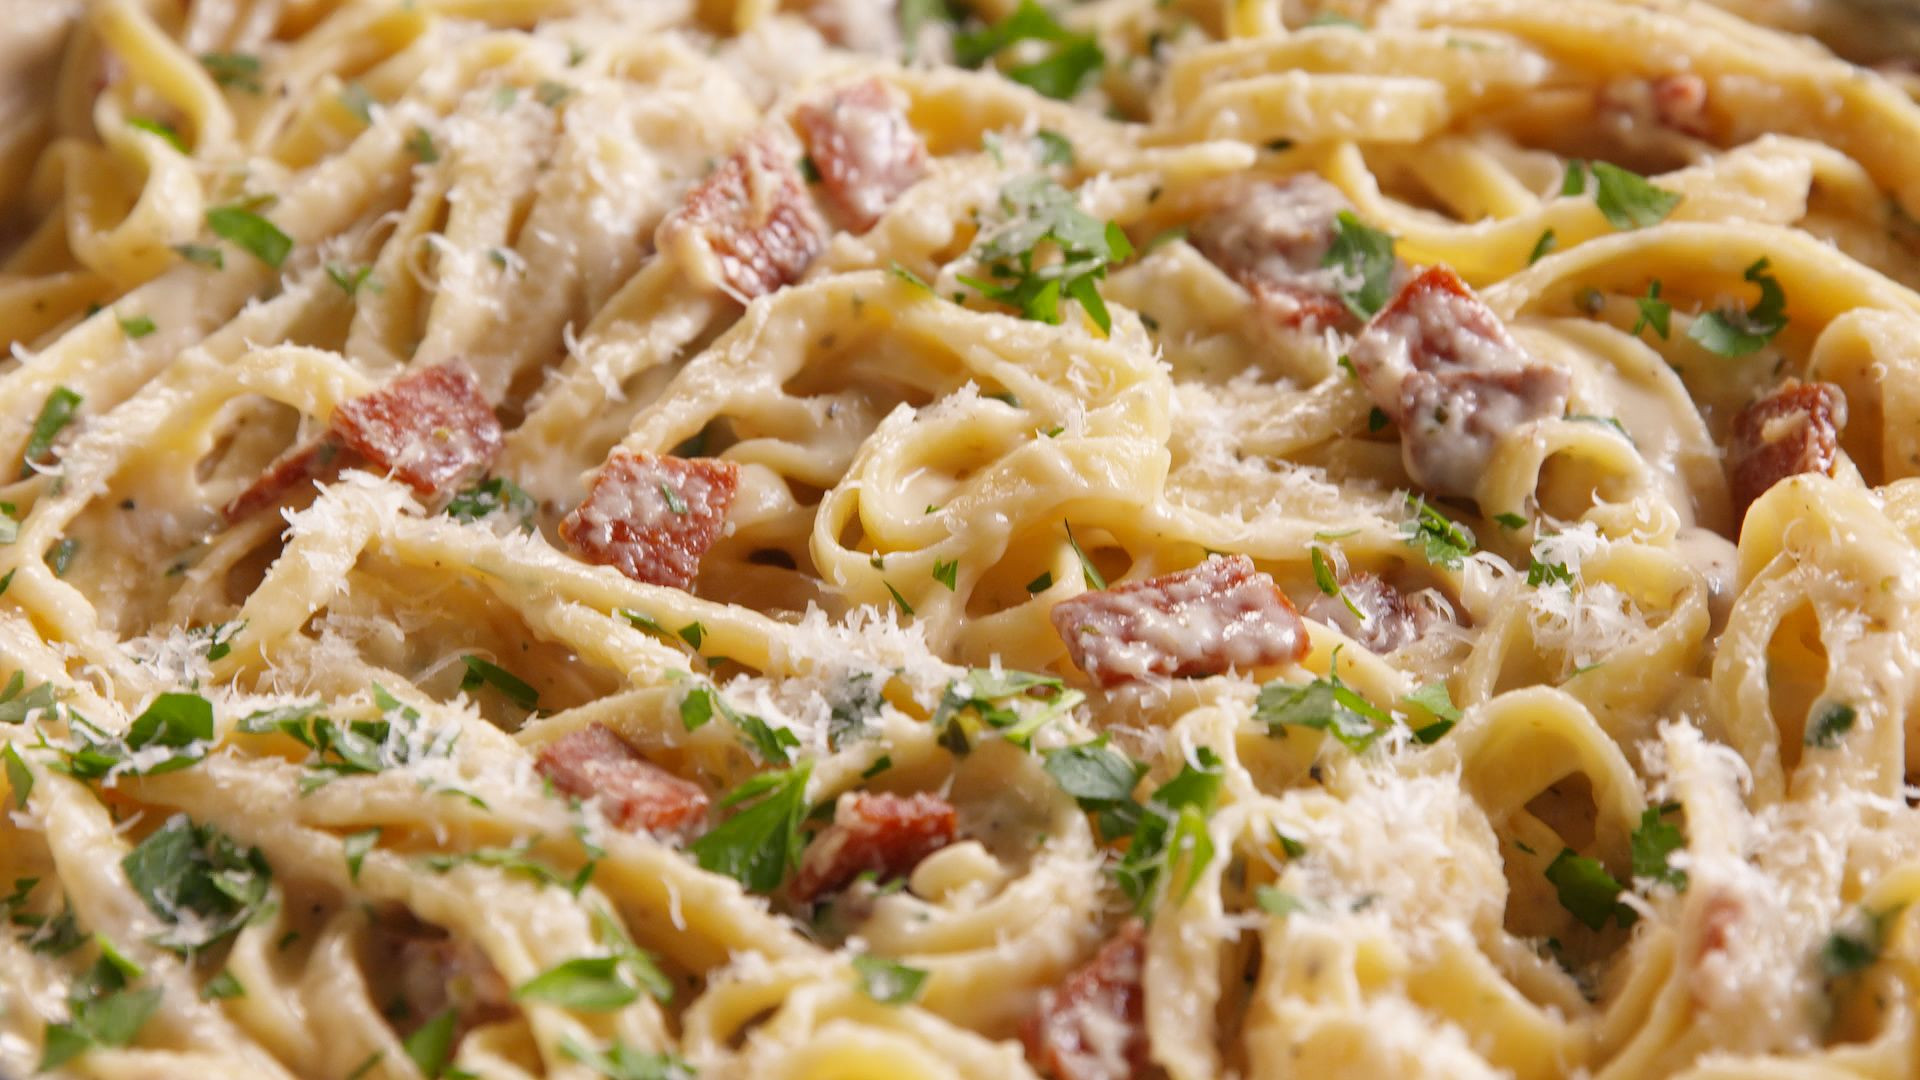 Cooking Pepperoni Fettuccine Video - Pepperoni Fettuccine How to Video